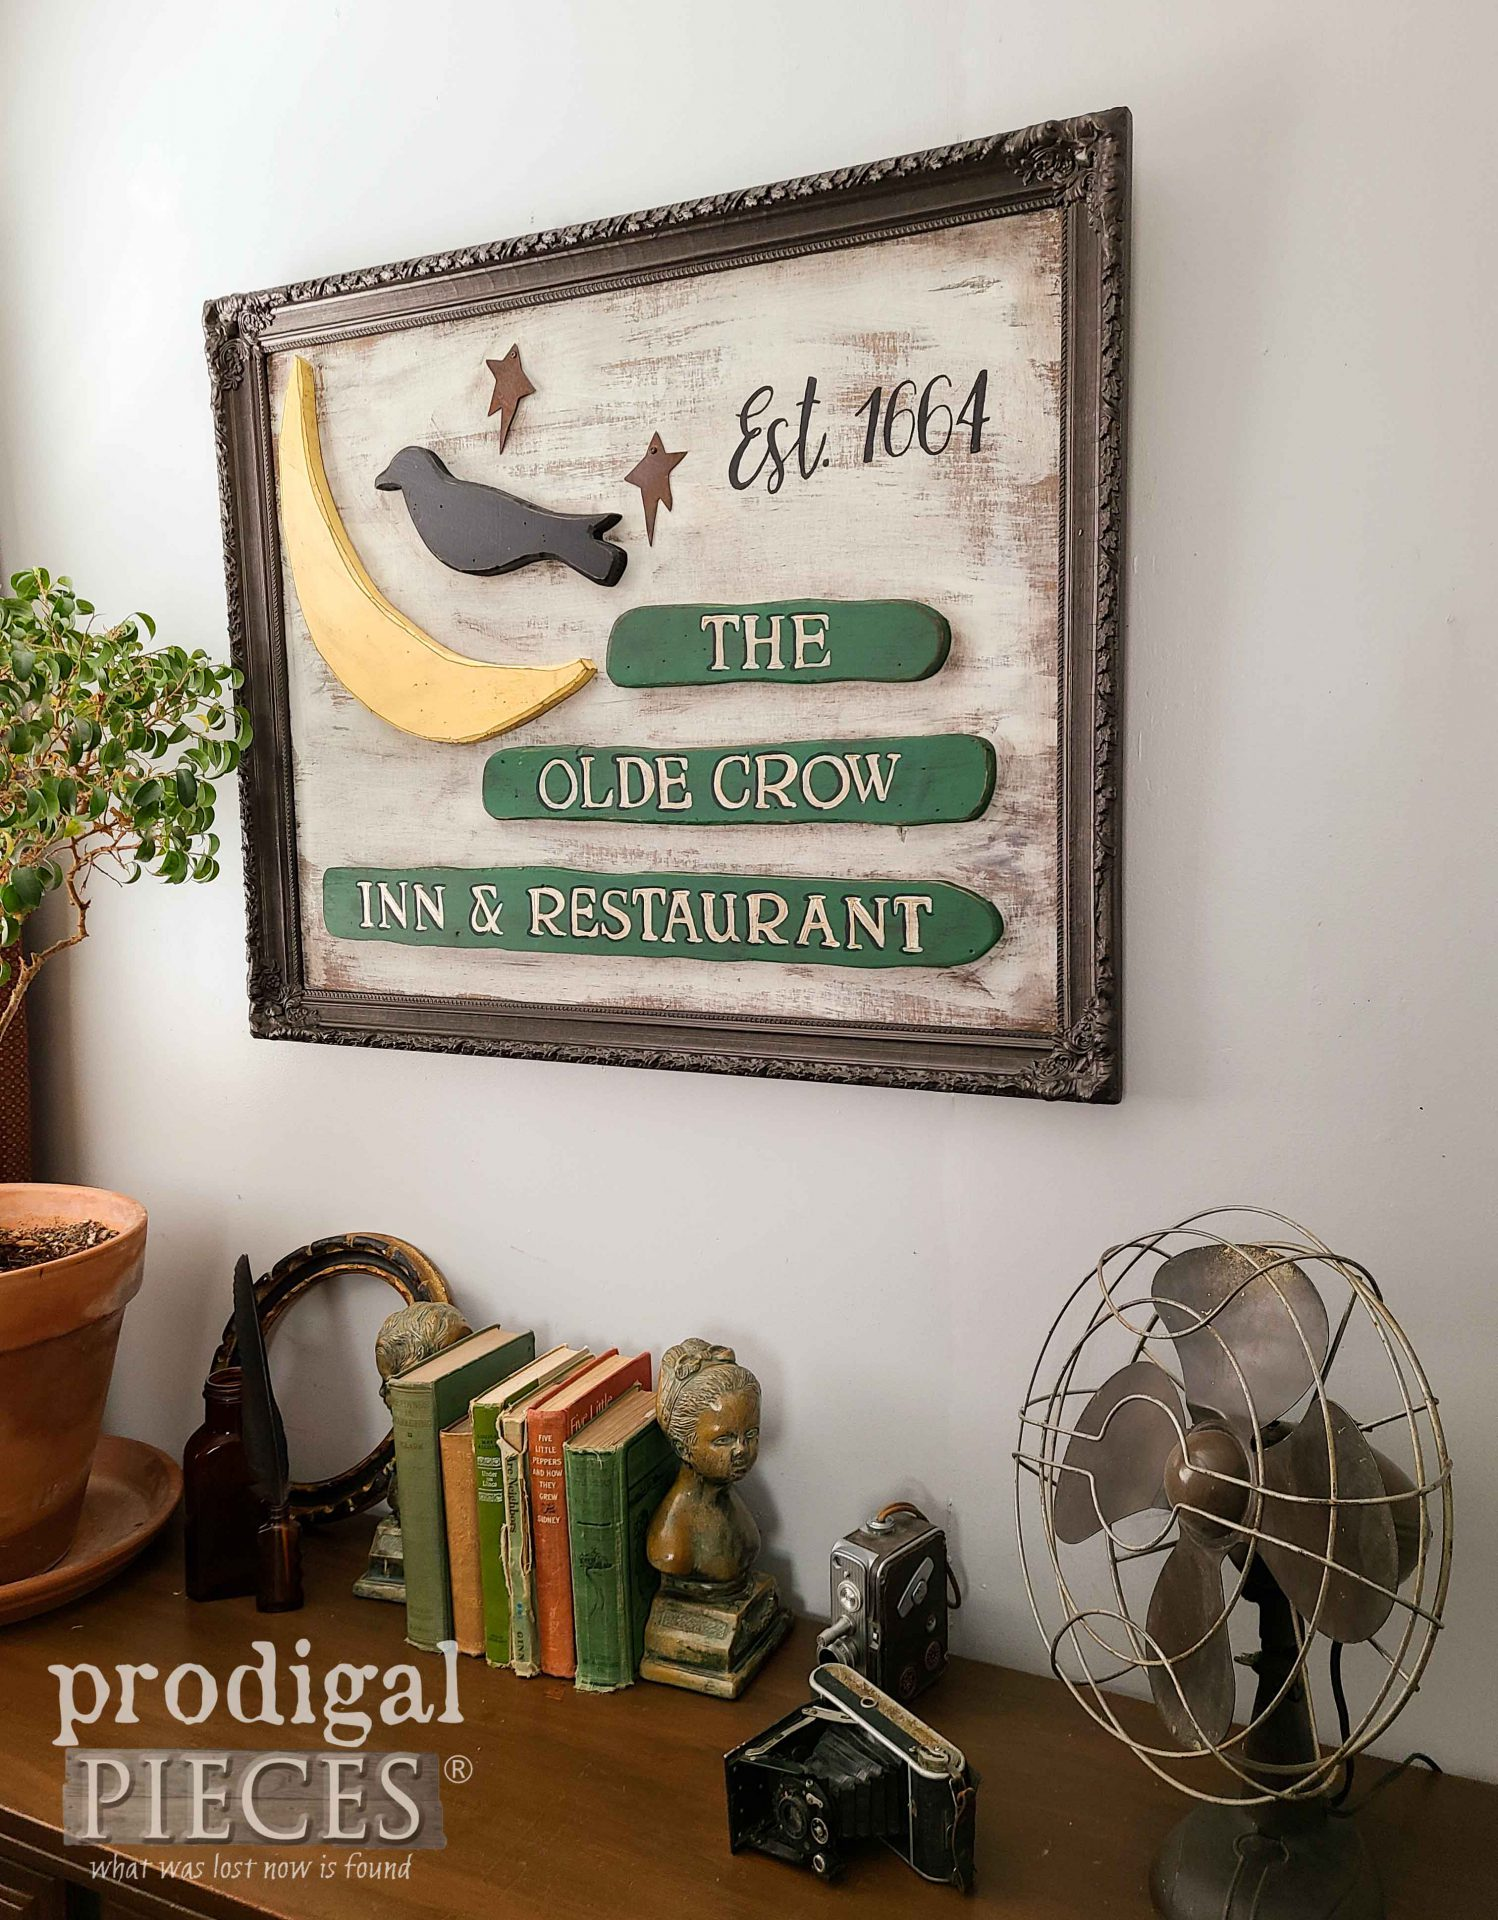 The Olde Crow Inn & Restaurant Sign from Repurposed Decor by Larissa of Prodigal Pieces | prodigalpieces.com #prodigalpieces #diy #home #homedecor